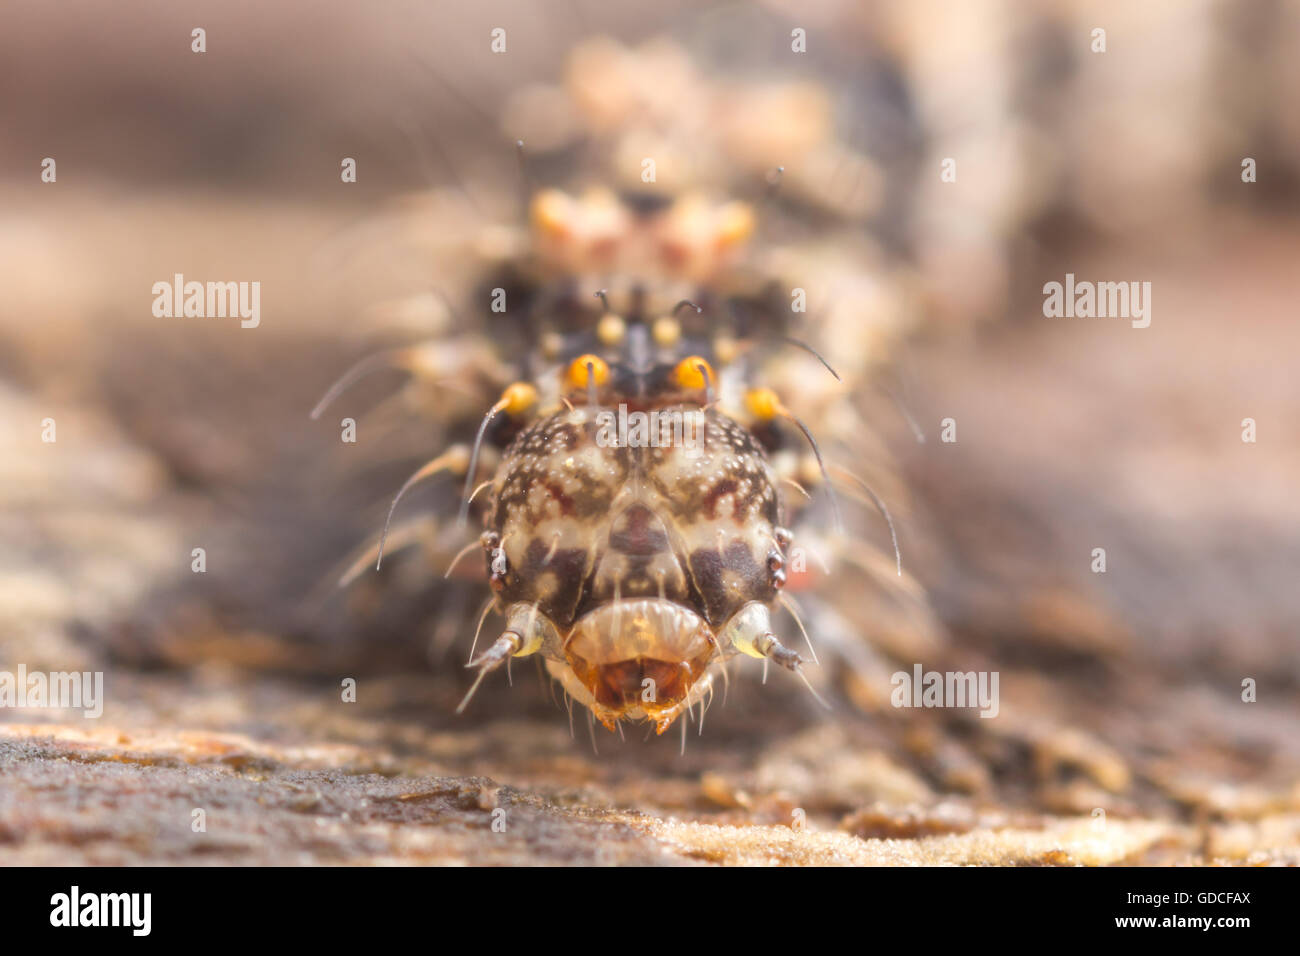 A frontal view of the head of a Common Fungus Moth (Metalectra discalis) caterpillar (larva). - Stock Image